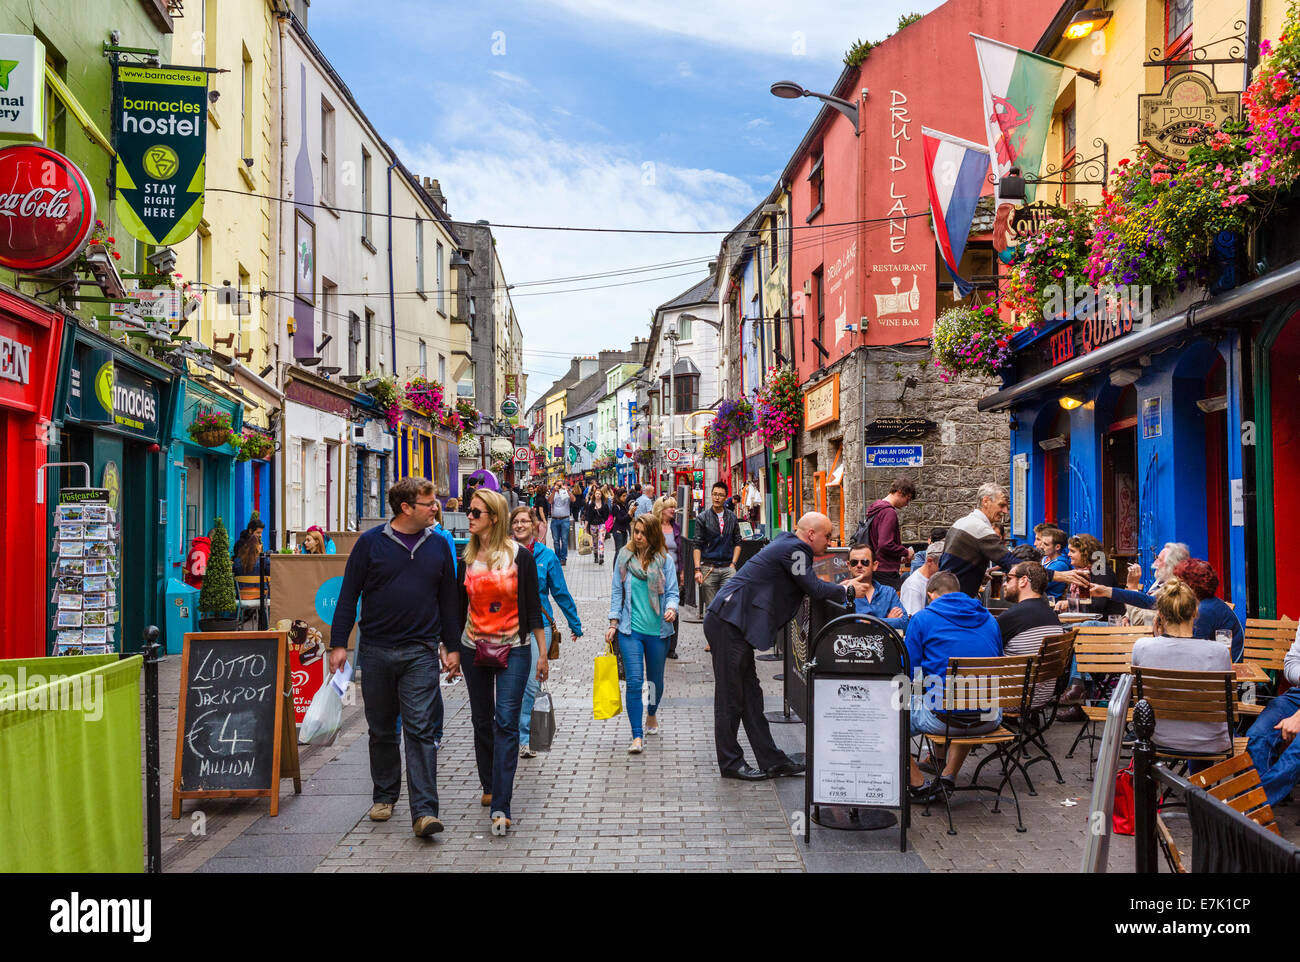 Pubs, restaurants and shops on Quay Street in Galway City Latin Quarter, County Galway, Republic of Ireland - Stock Image